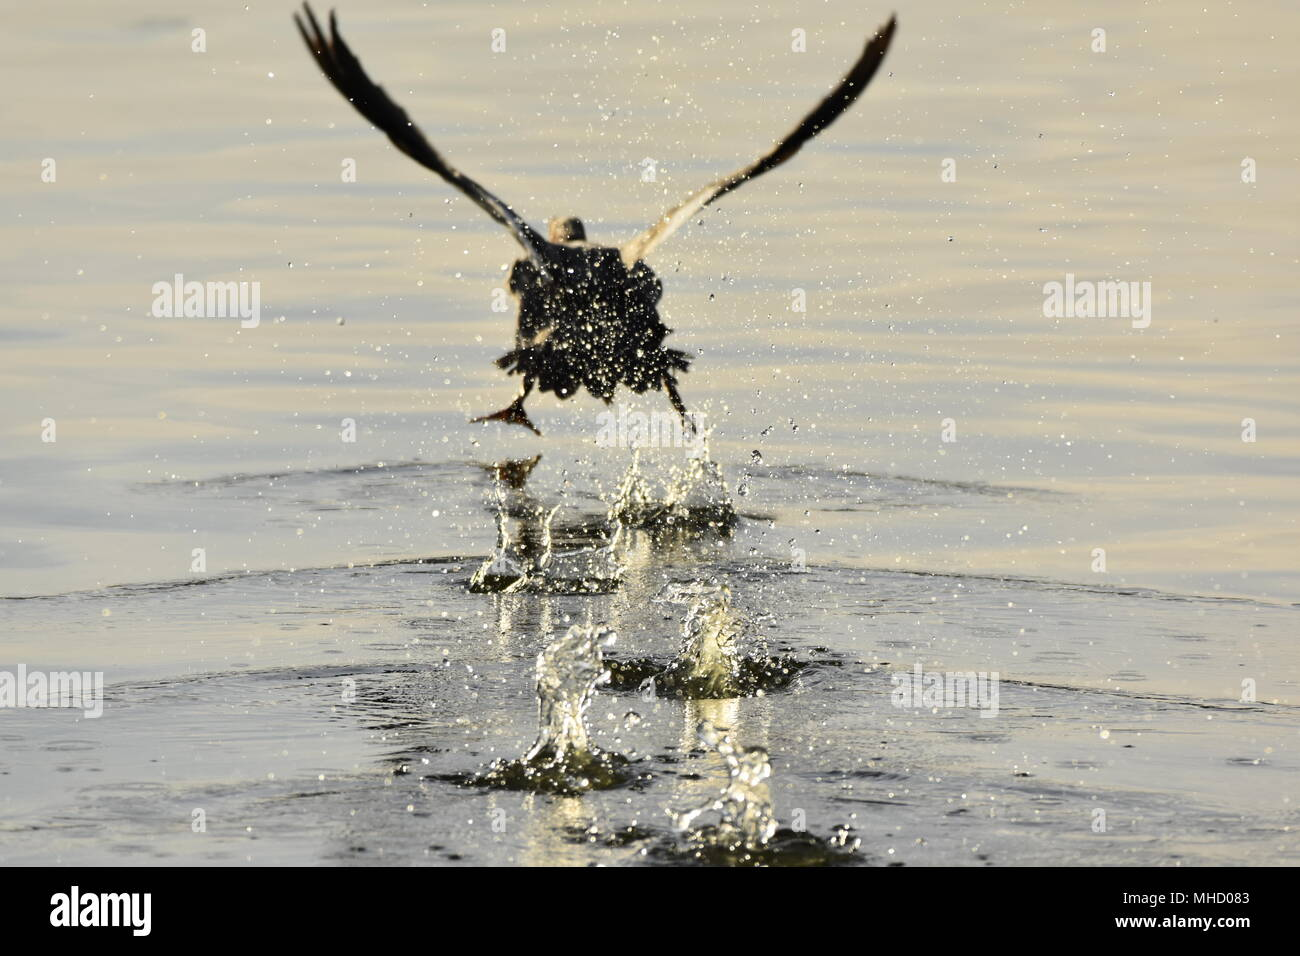 A duck lifting off the surface of the pond, splashing water and sending ripples all over! Las Gallinas Sanitary Ponds, San Rafael, CA. - Stock Image